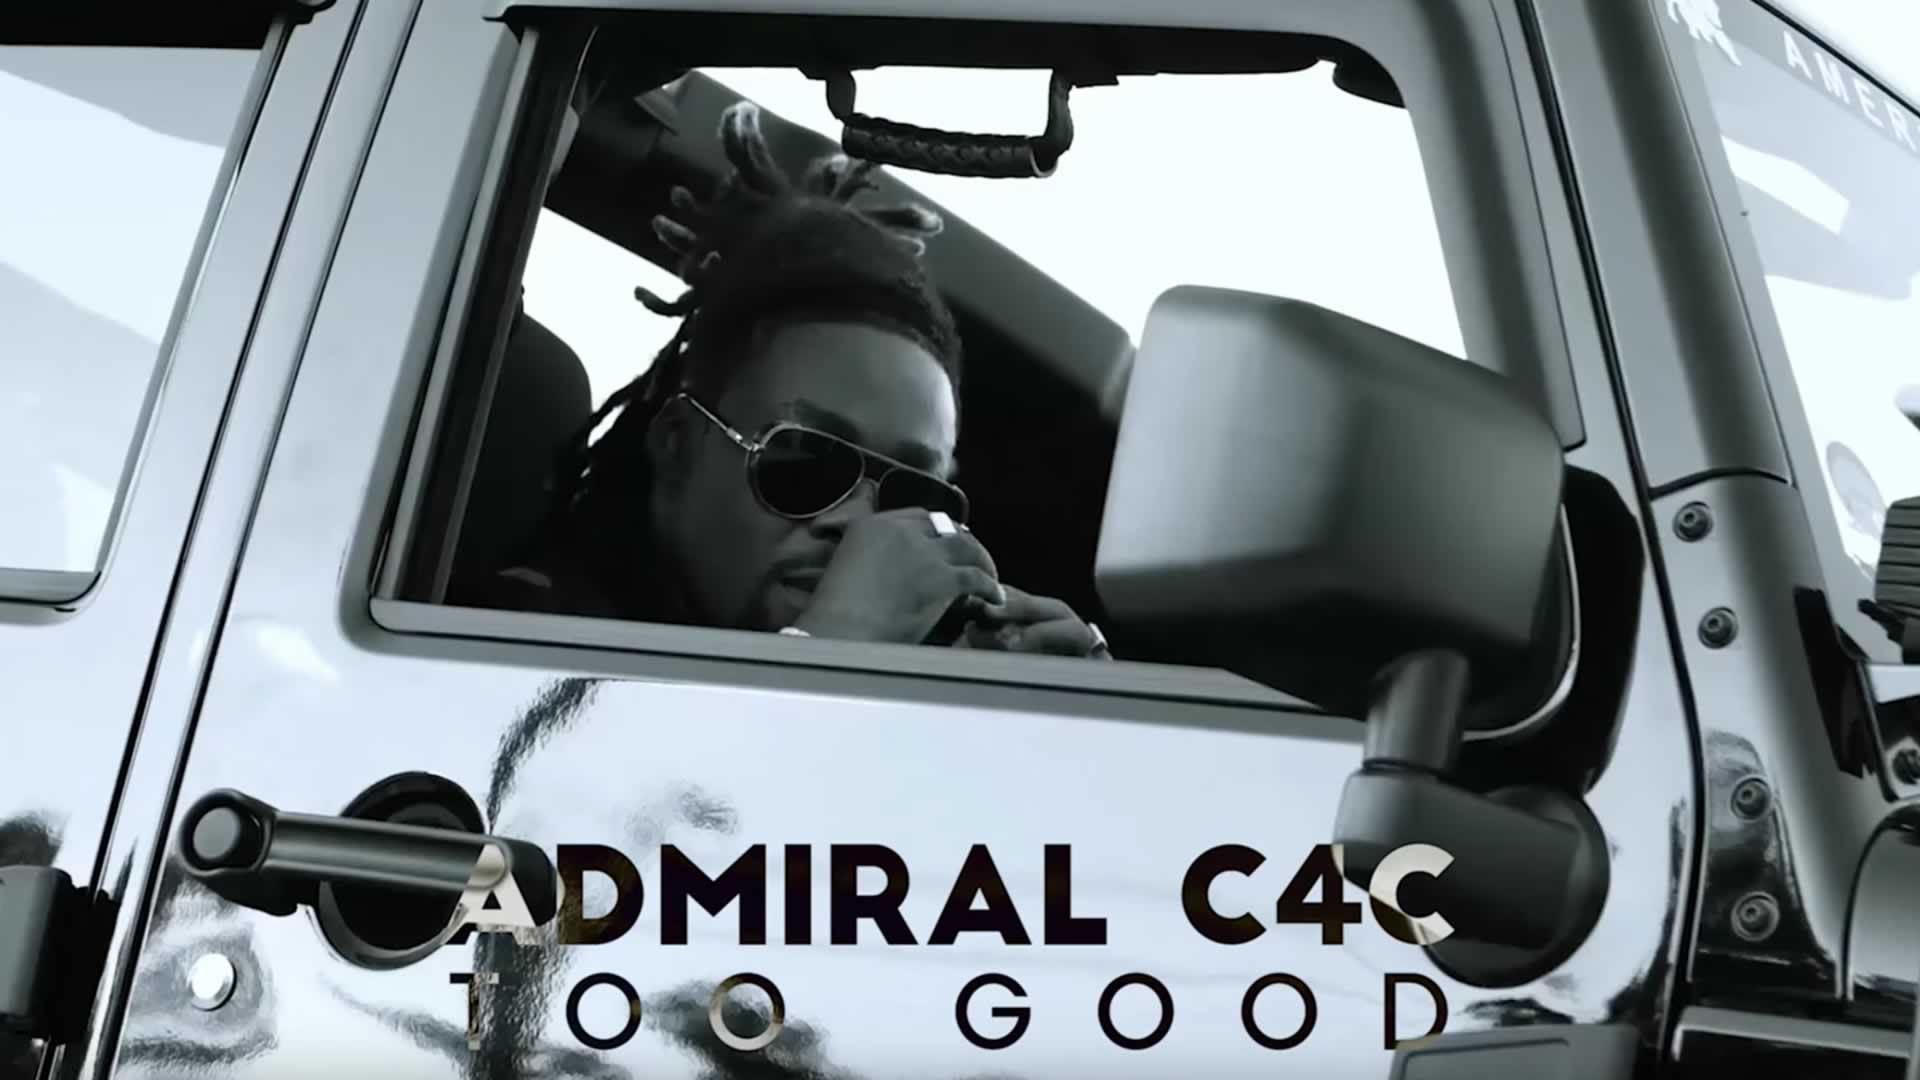 Admiral C4C - Too Good feat. Salento Guys and W.A.W.